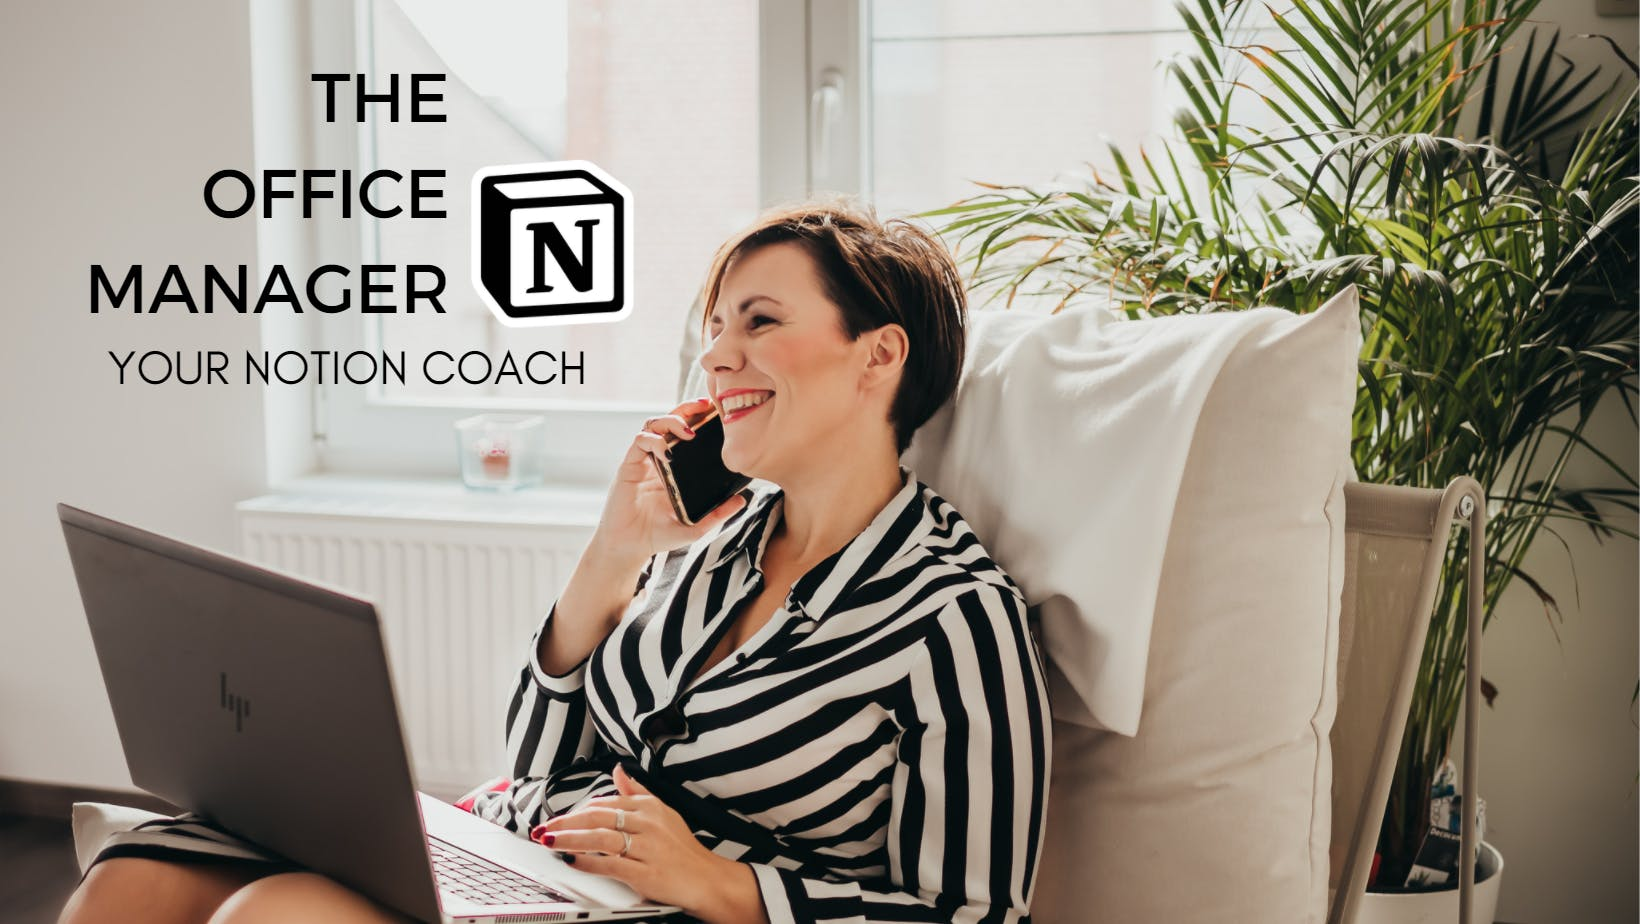 The Office Manager, your Notion Coach